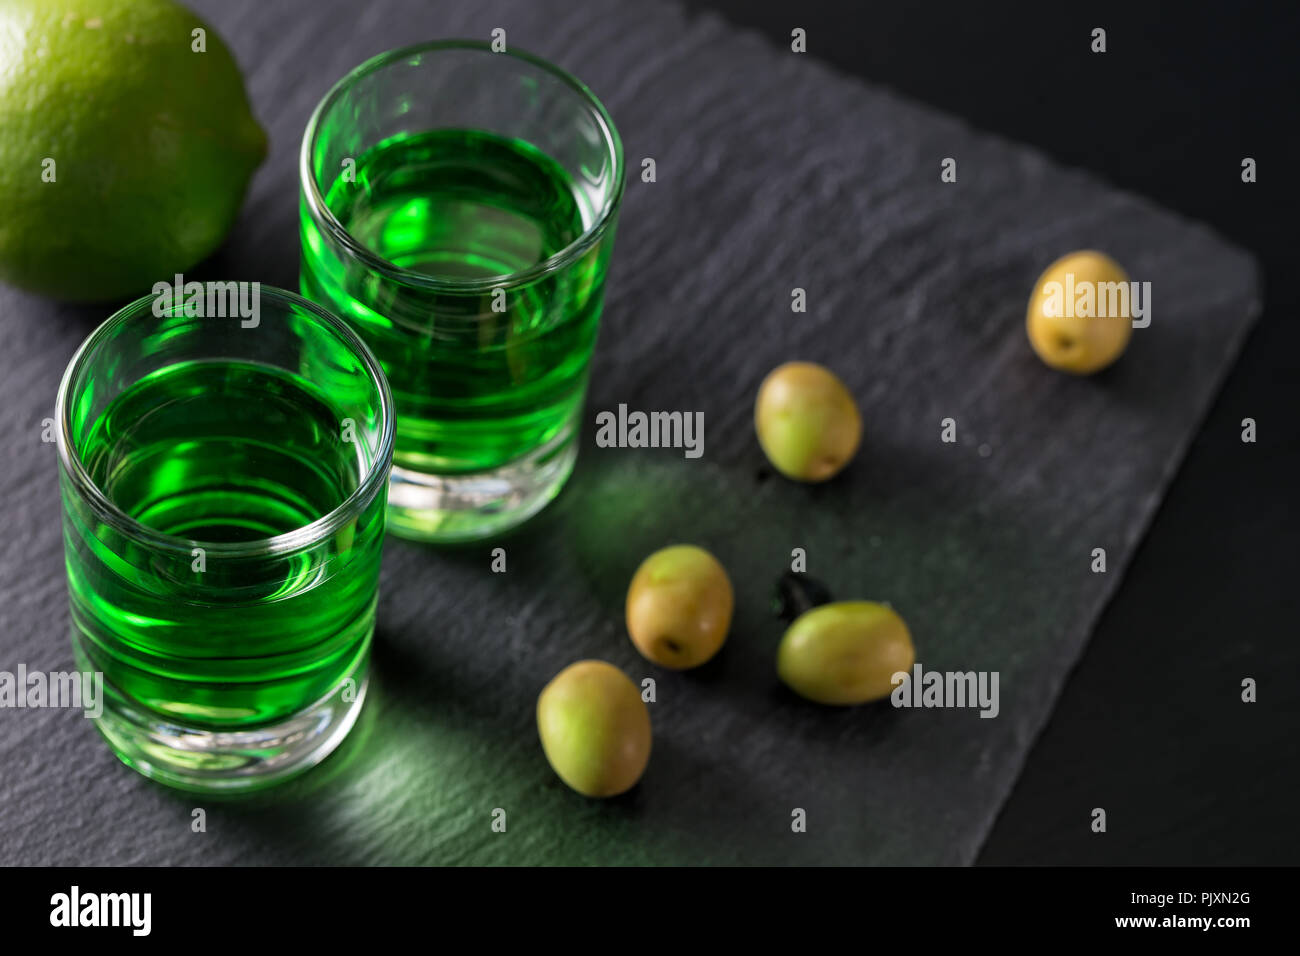 Absinthe with lime and green olives on a dark background - Stock Image